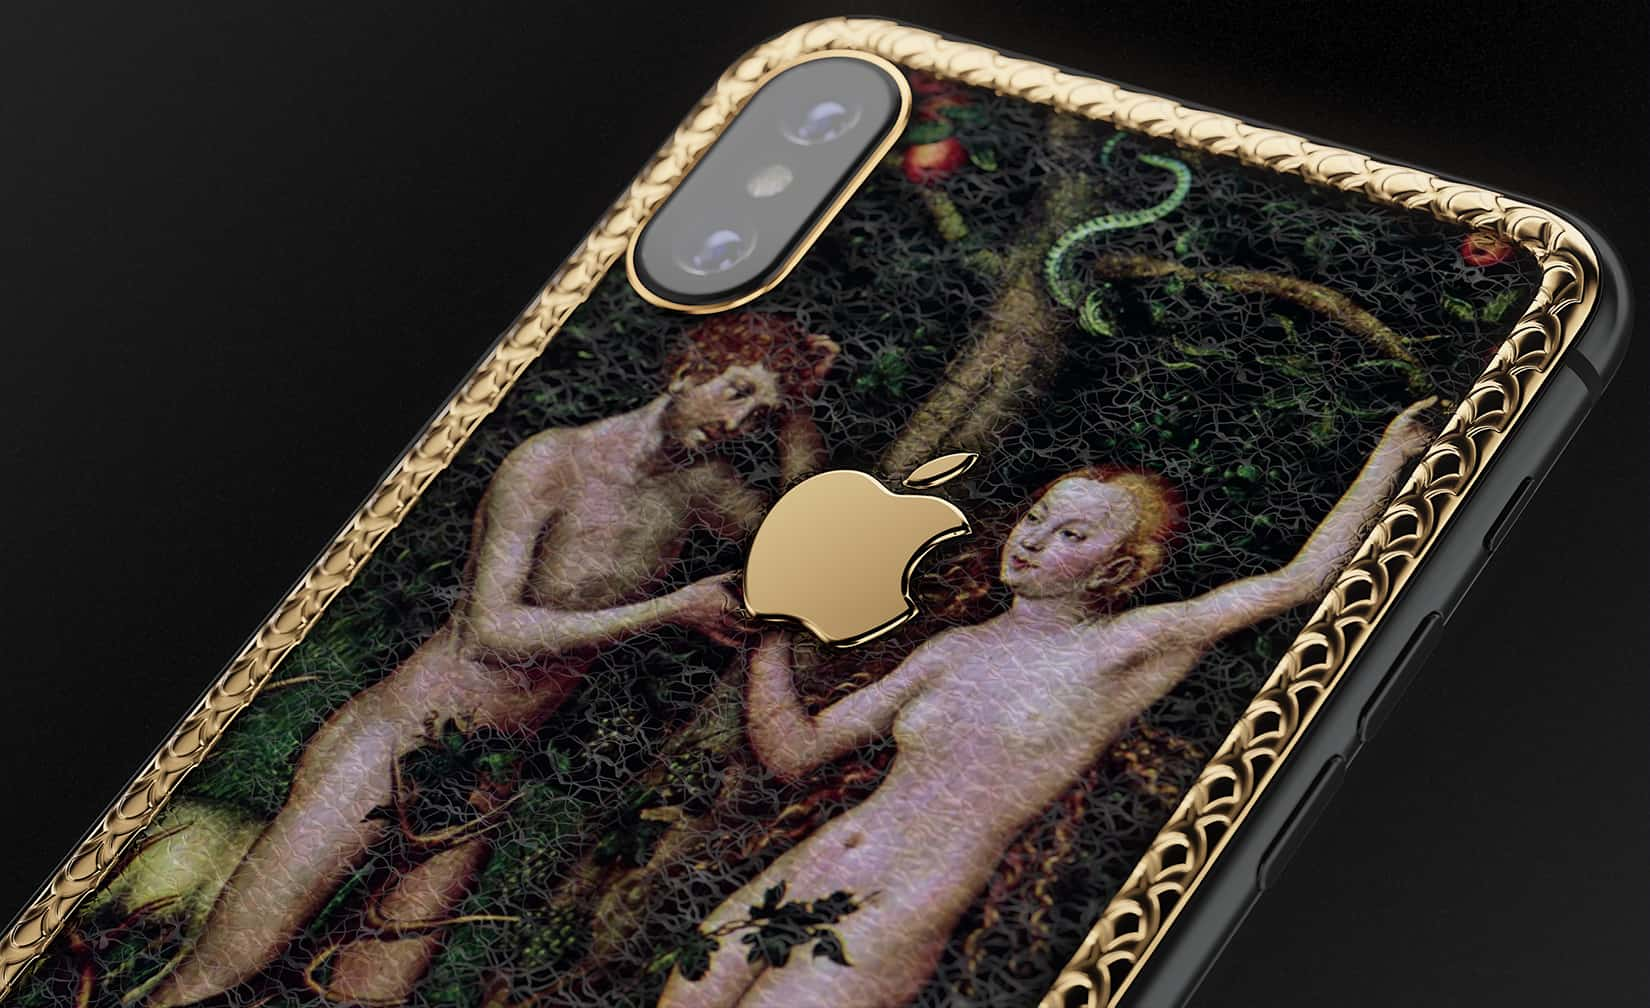 Resultado de imagen para APPLE SILICON VALLEY ADAM EVE